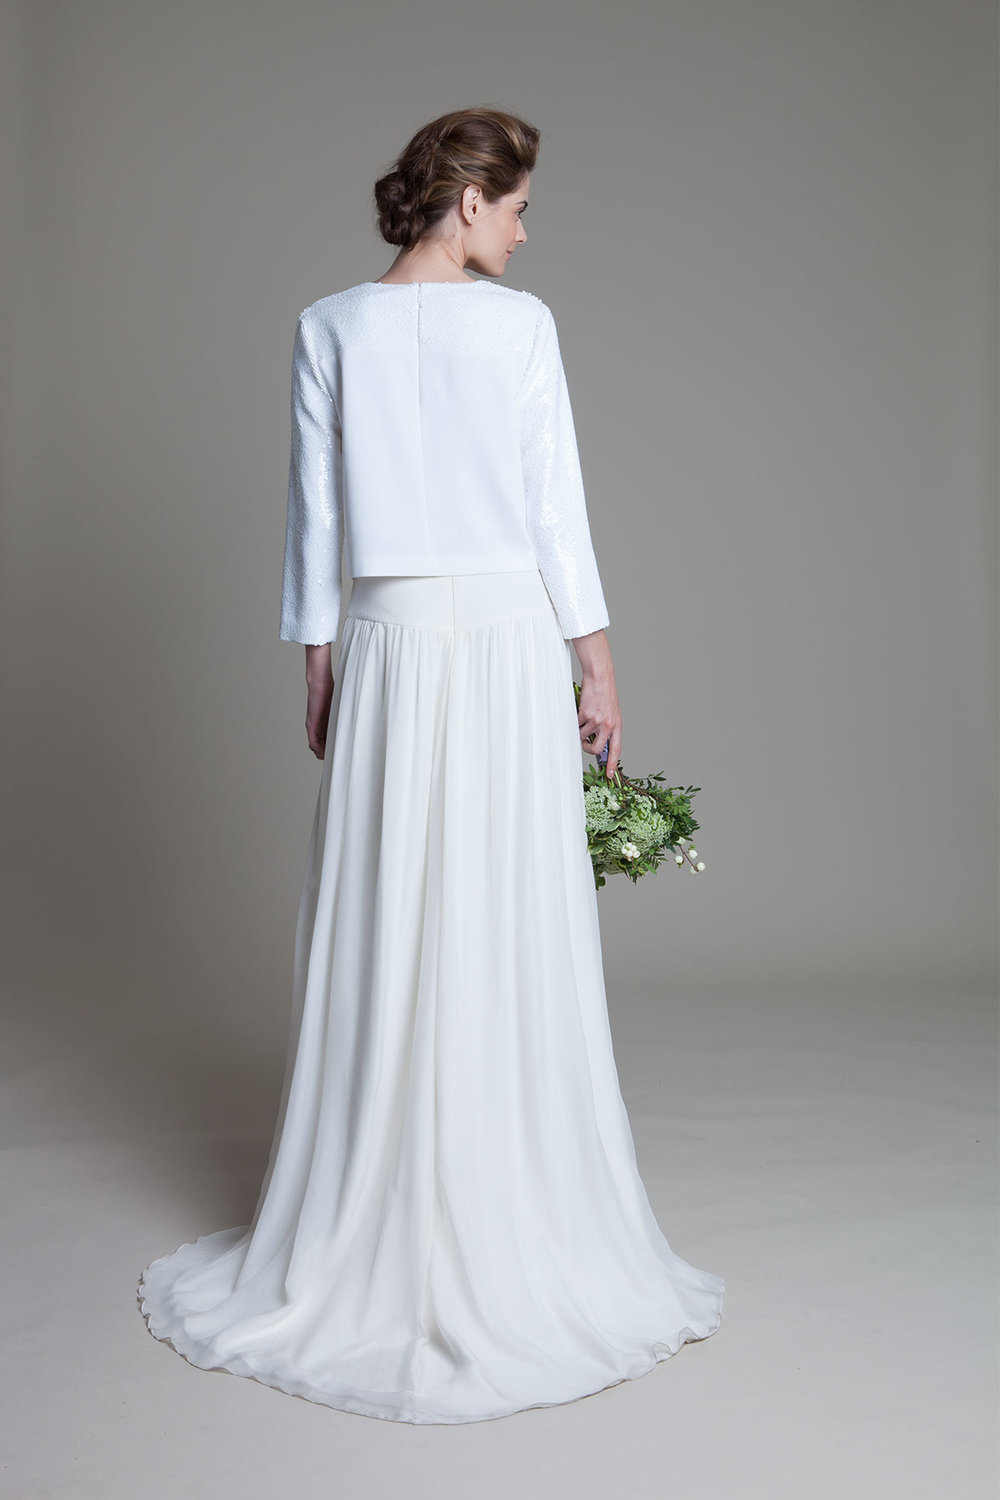 Back view of the Laura ivory chiffon skirt with drop waist and box sequin long sleeve top wedding dress by Halfpenny London